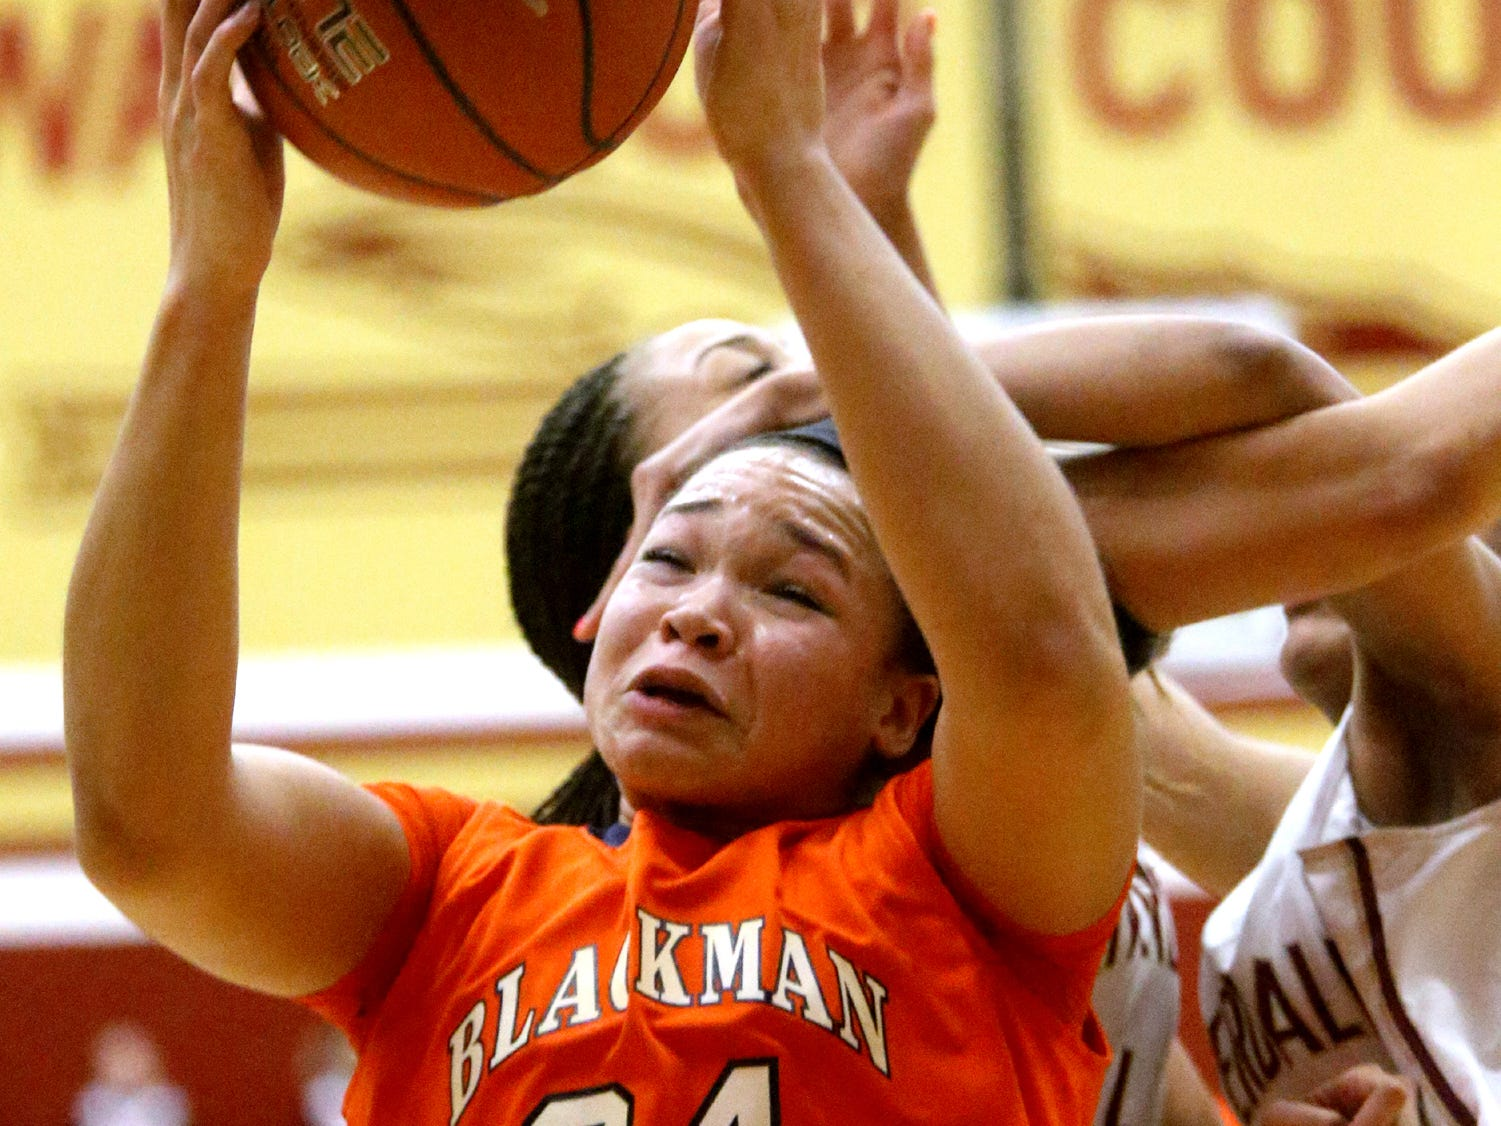 Blackman's Alex Johnson grabs the rebound during the first half of the game against Riverdale at Riverdale on Friday Jan. 9, 2015.